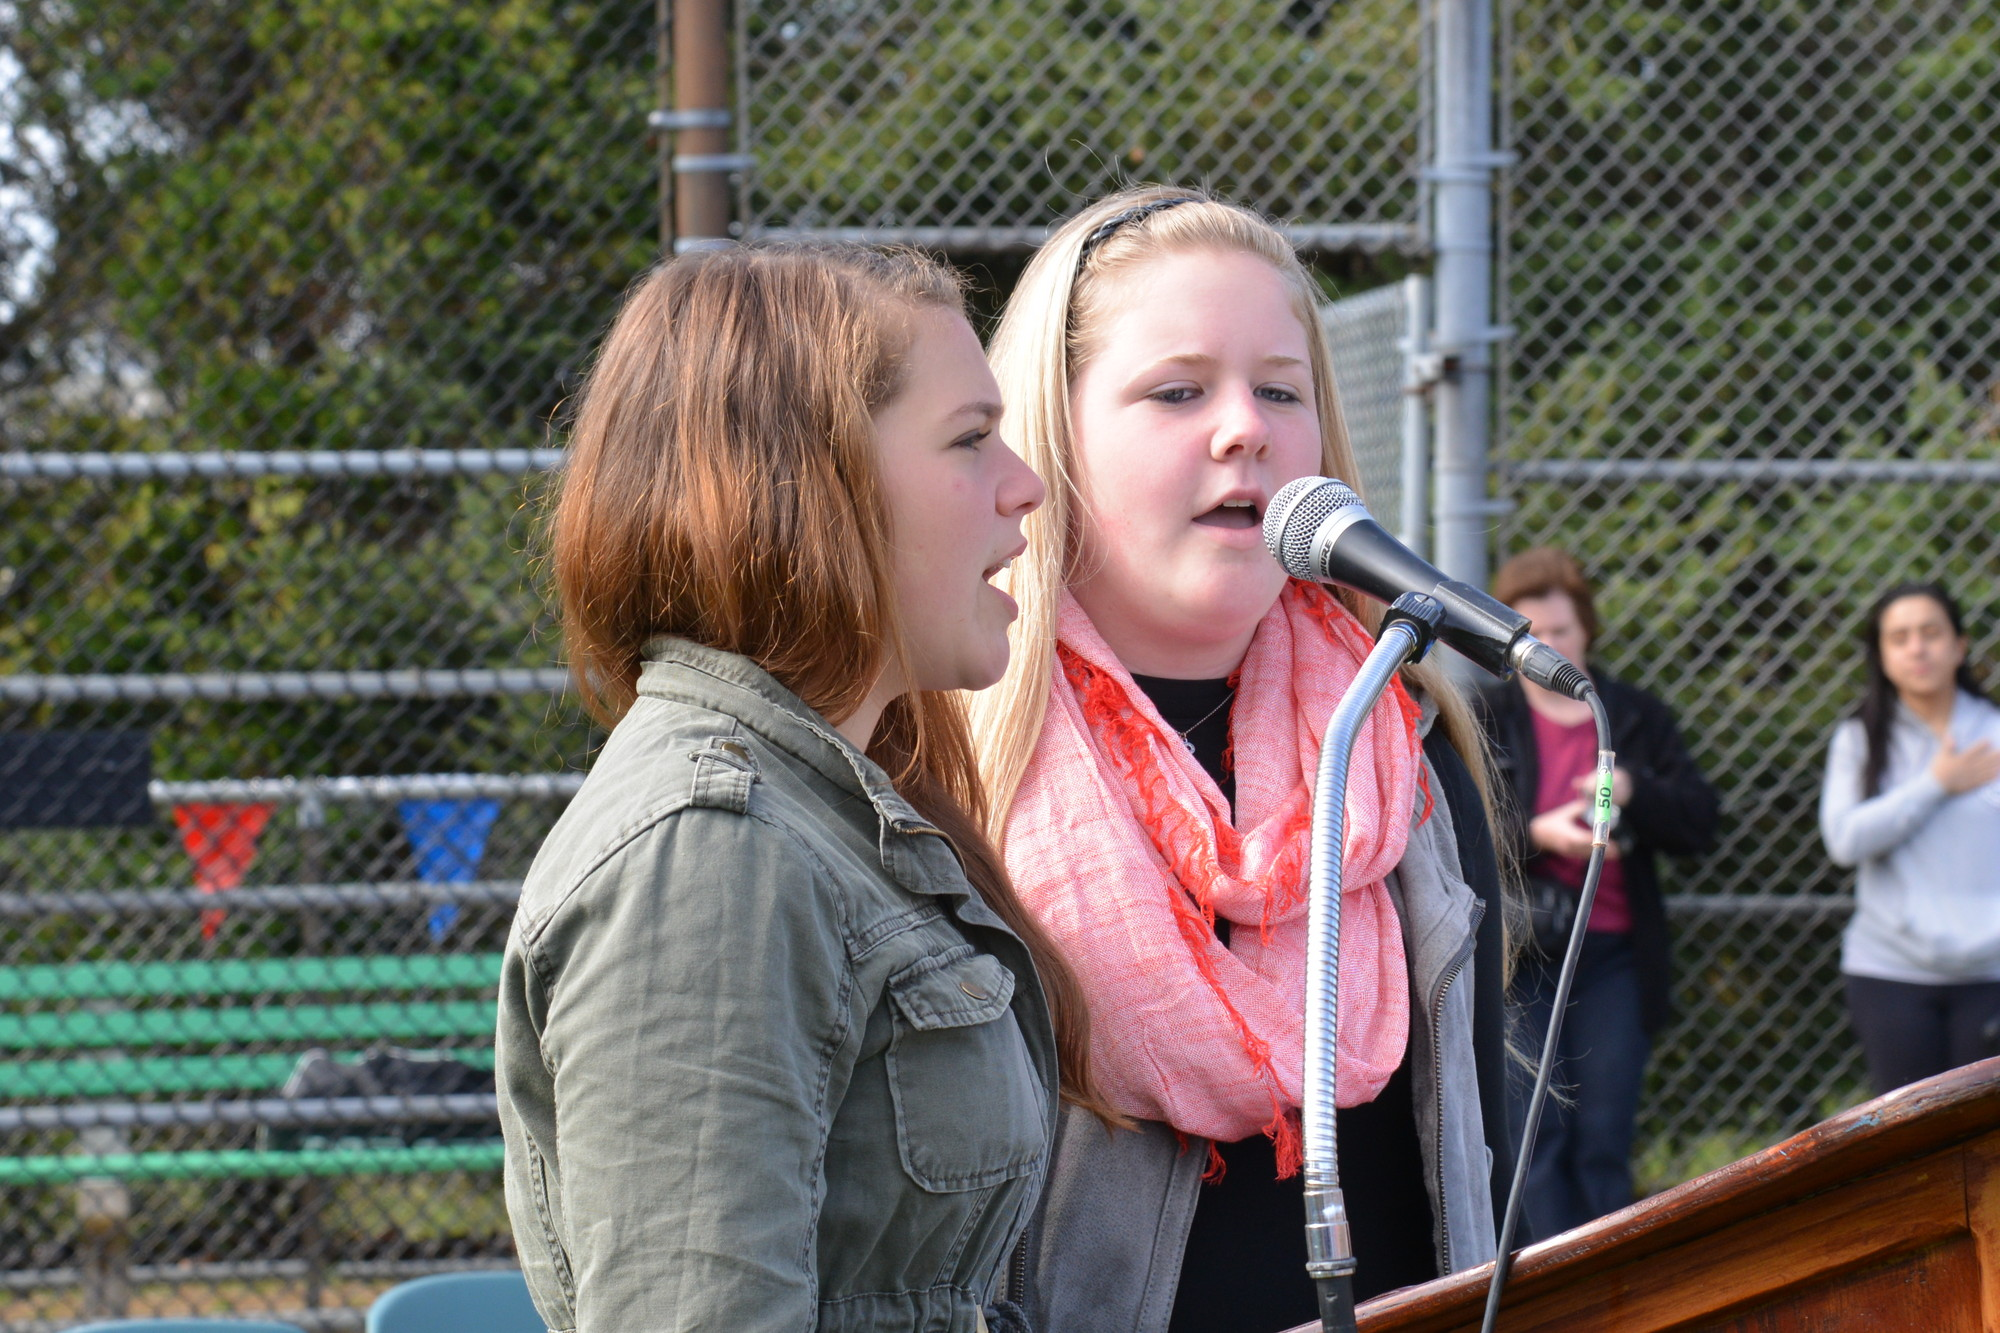 W.T. Clarke juniors Jenna Kennedy and Danielle Ragusa delivered a stirring performance of the National Anthem during the ceremony.